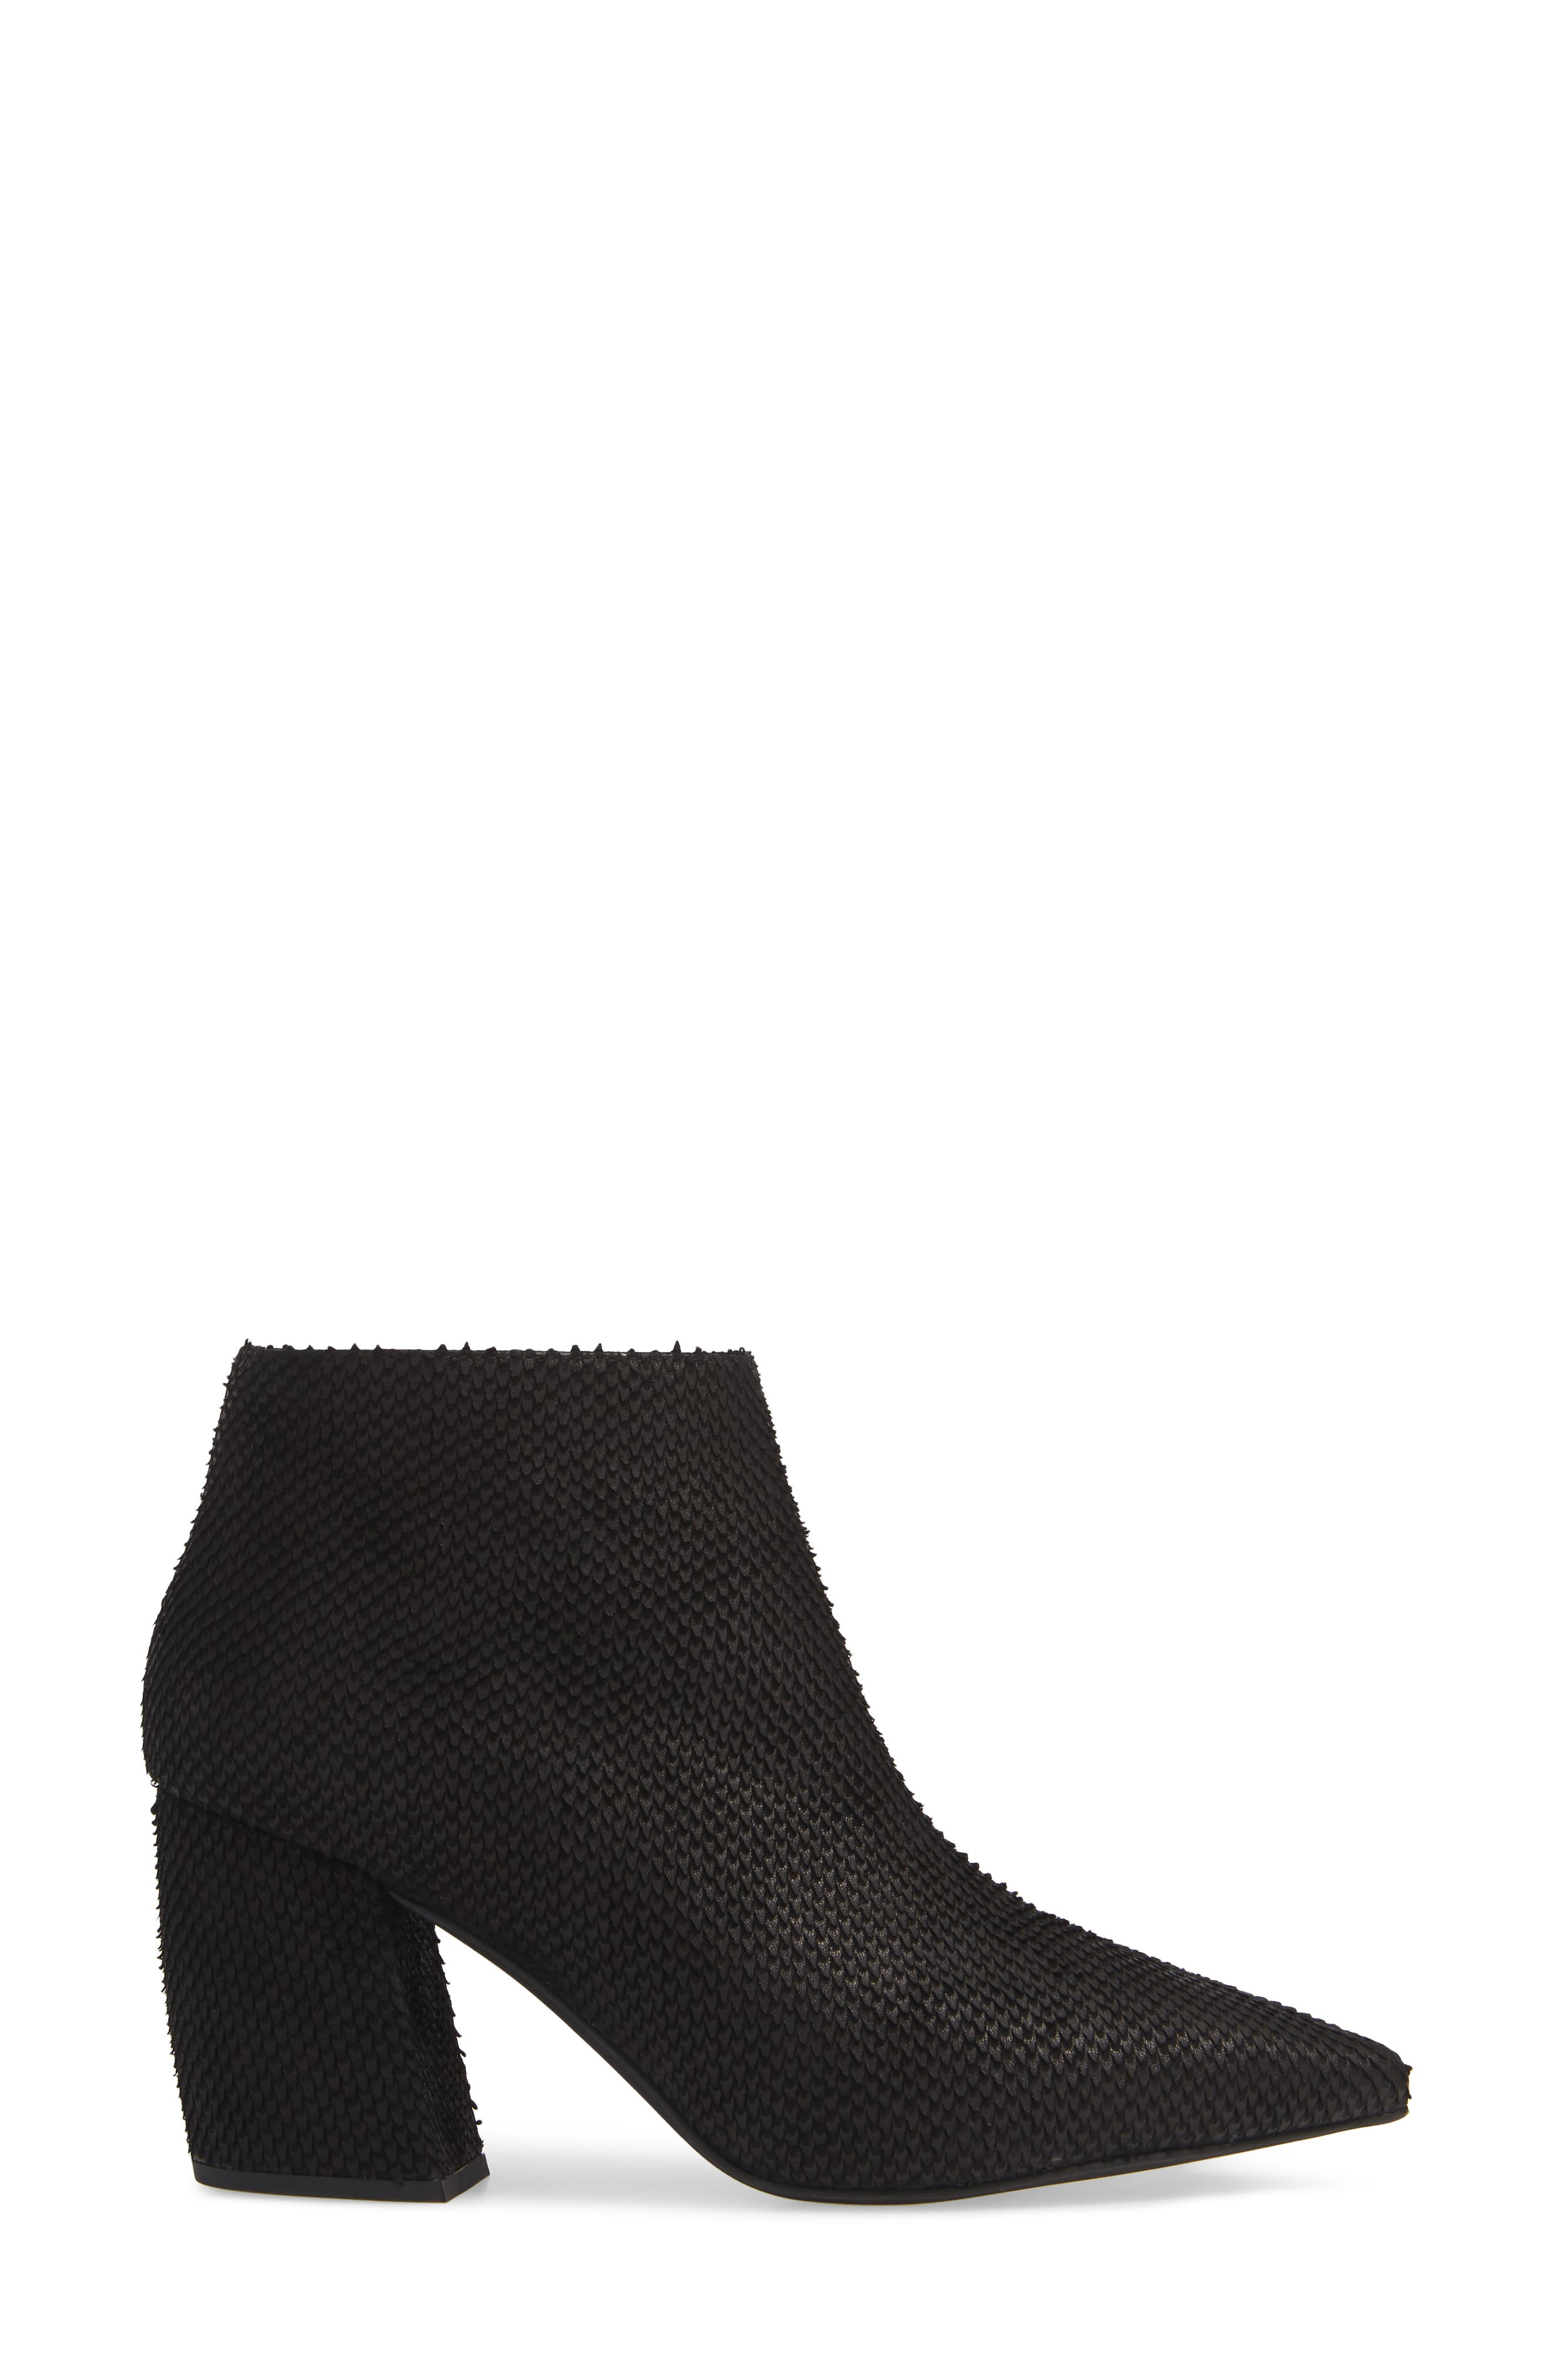 JEFFREY CAMPBELL, Total Ankle Bootie, Alternate thumbnail 3, color, BLACK SCALES